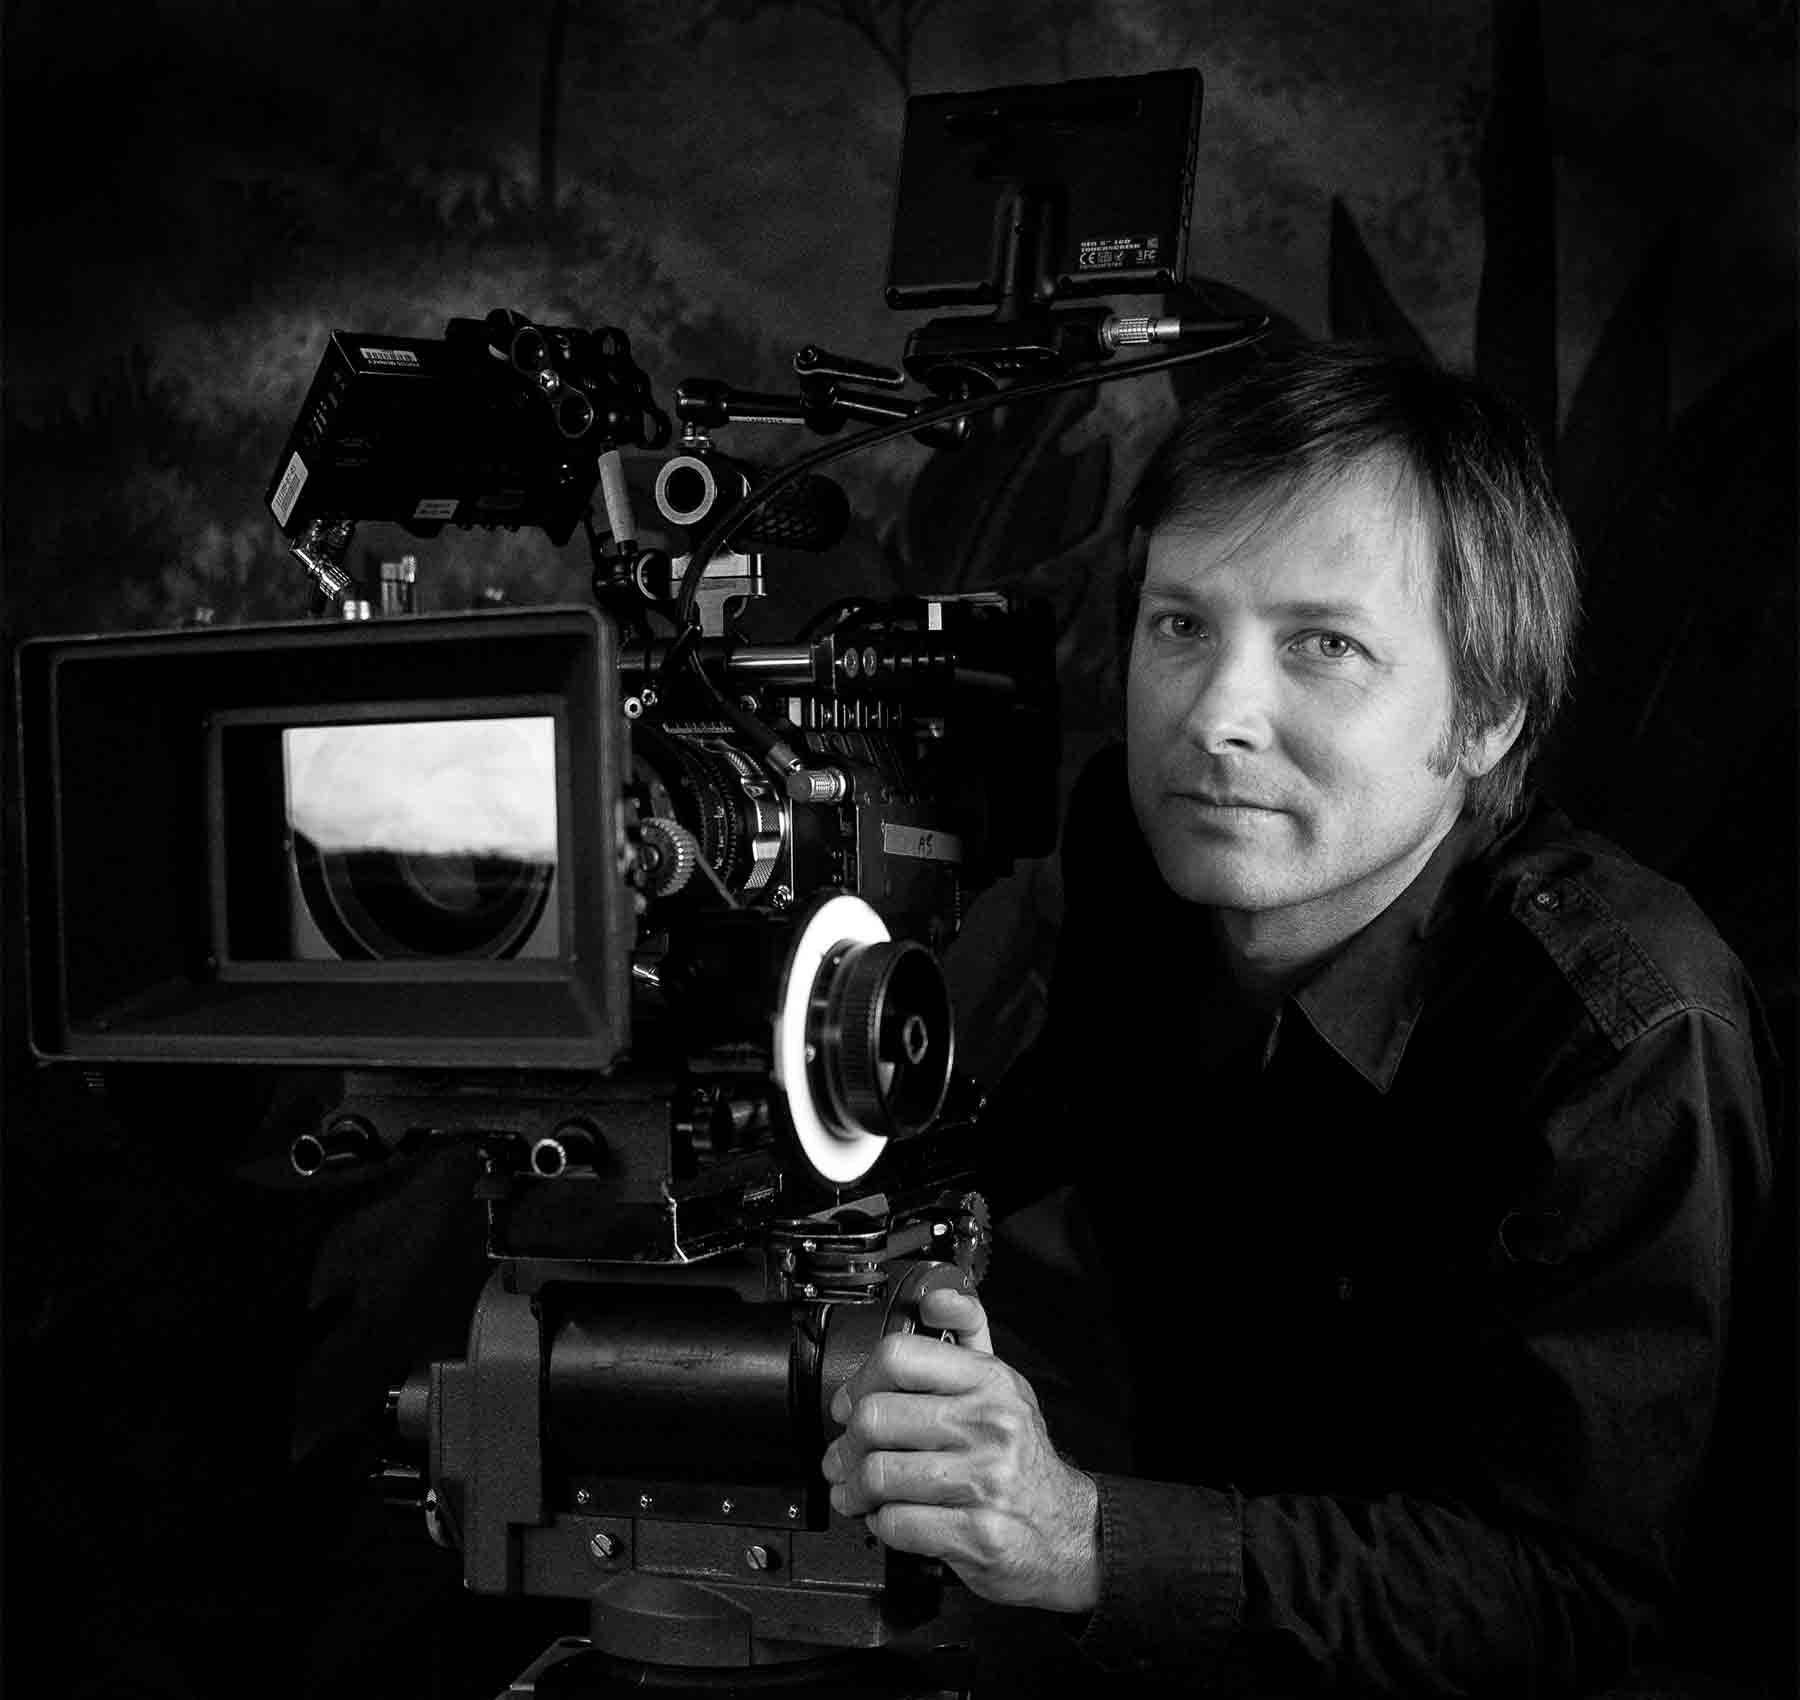 John Tipton 8-Time Emmy Winning Cinematographer - World's Best Director of Photography - World's best Cinematographers